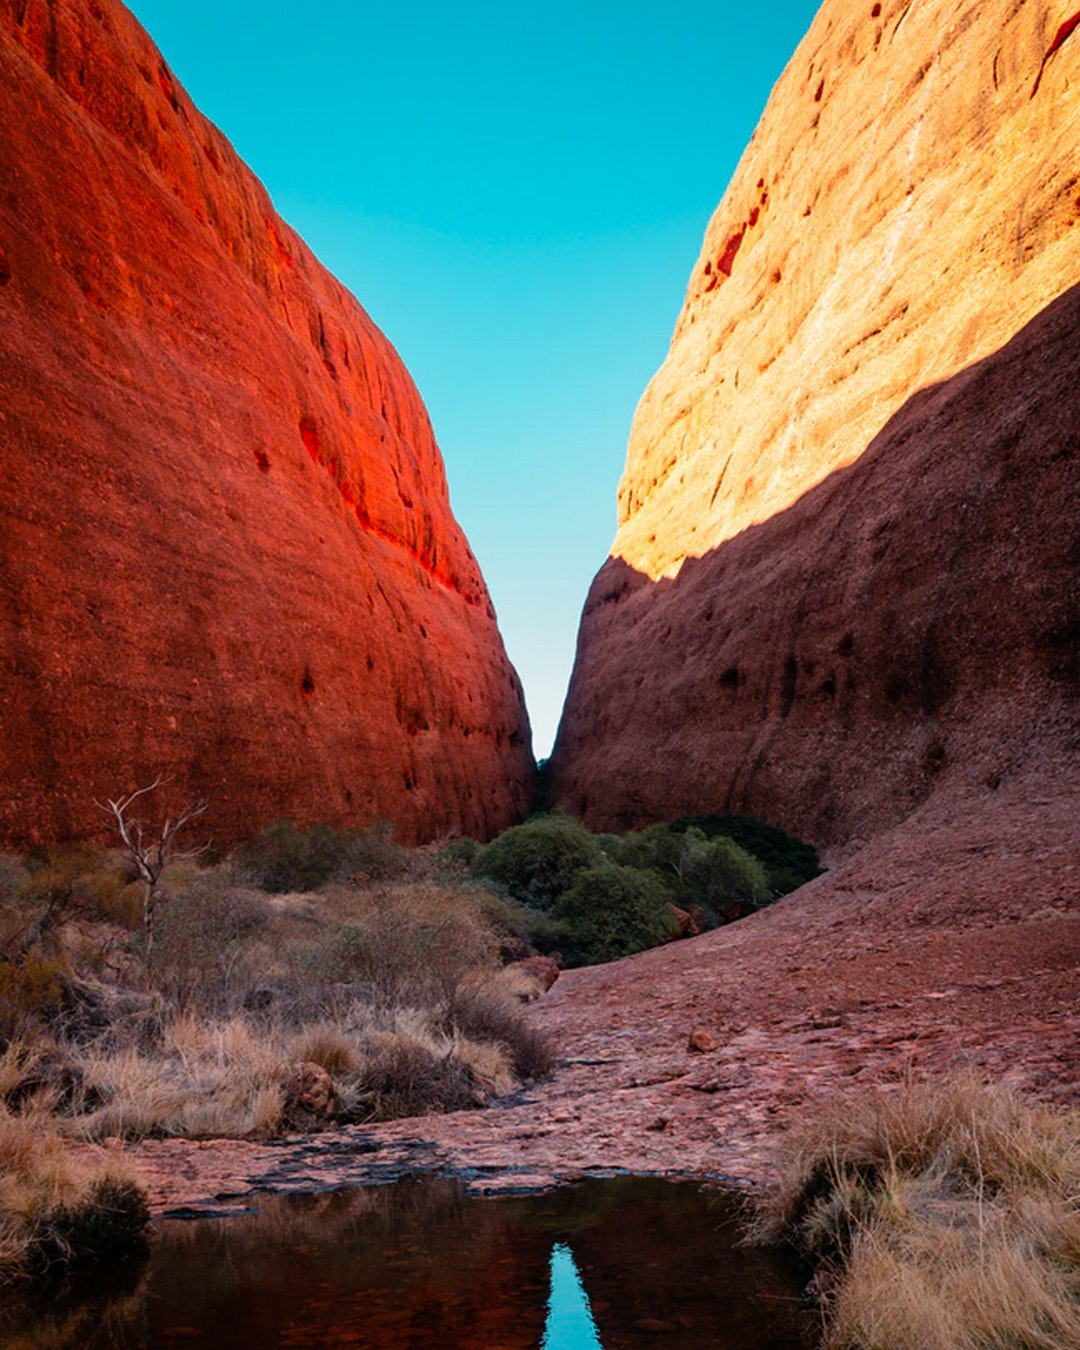 Petermann Gorge at Uluru in Australia's Northern Territory